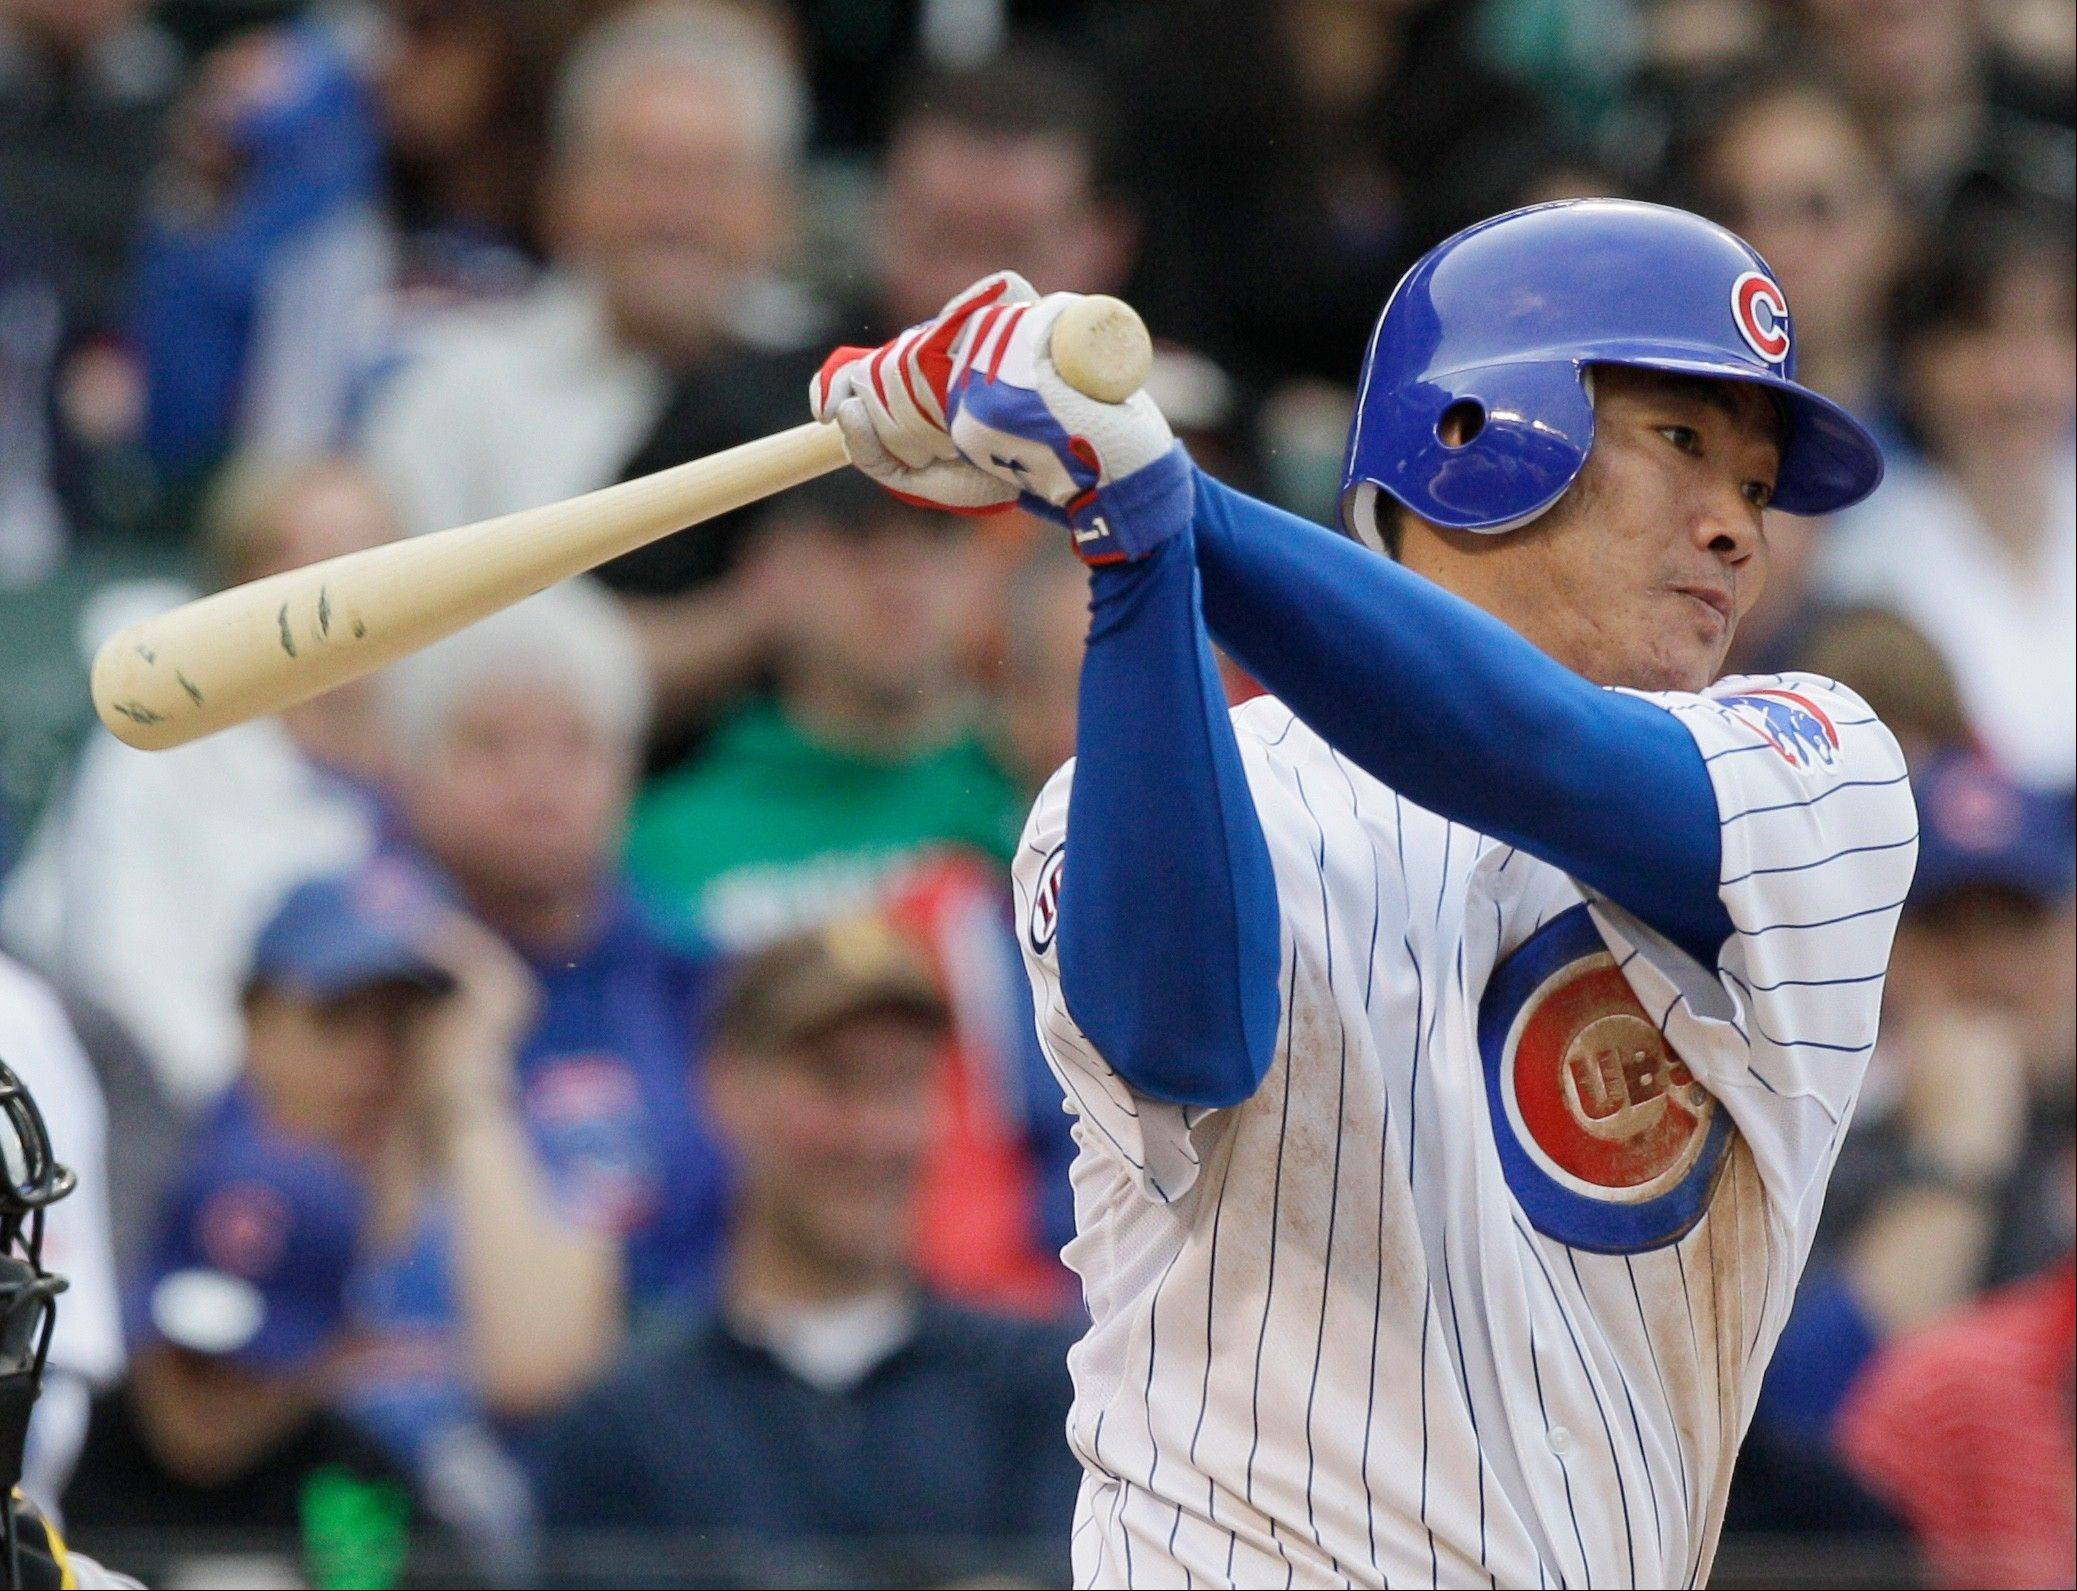 Cubs deal Fukudome to Cleveland for prospects